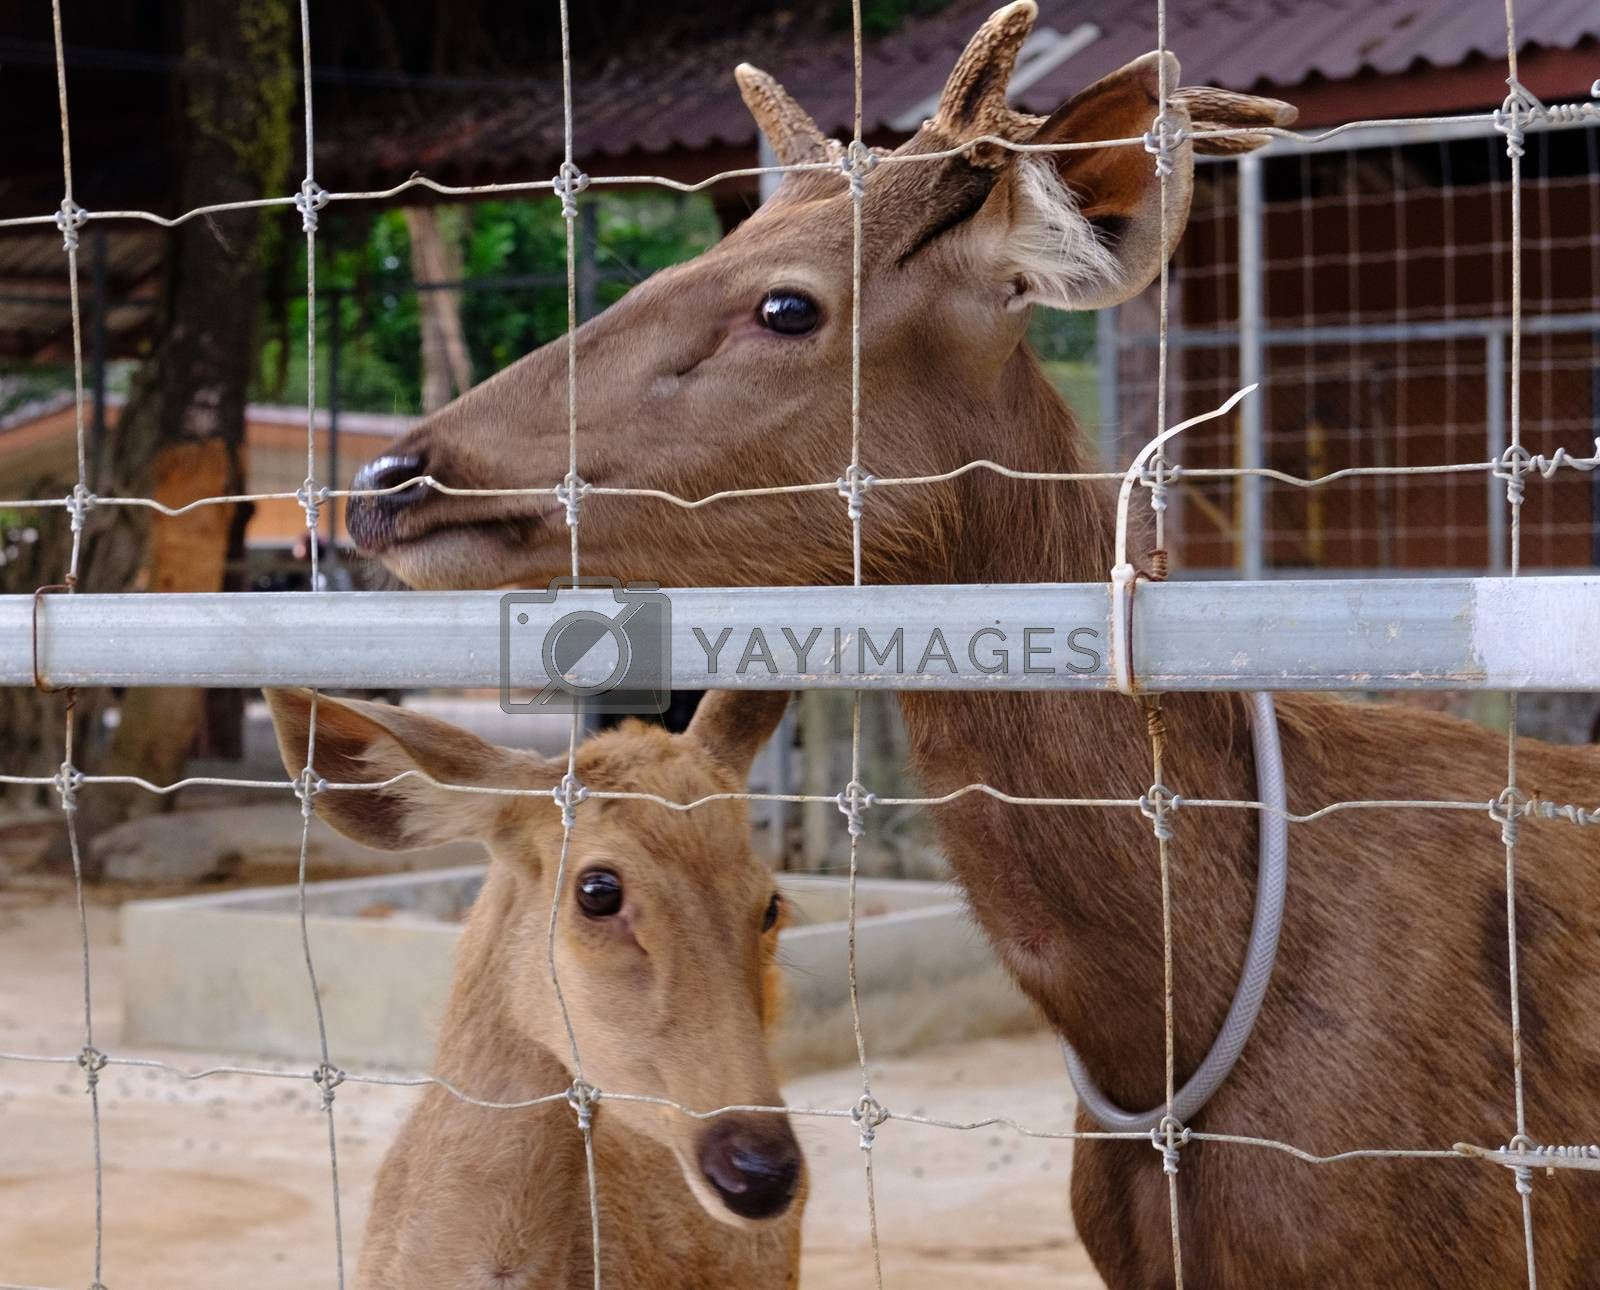 CloseUp of deer with looking sad eyes behind a wire fence. Life in captivity concept.